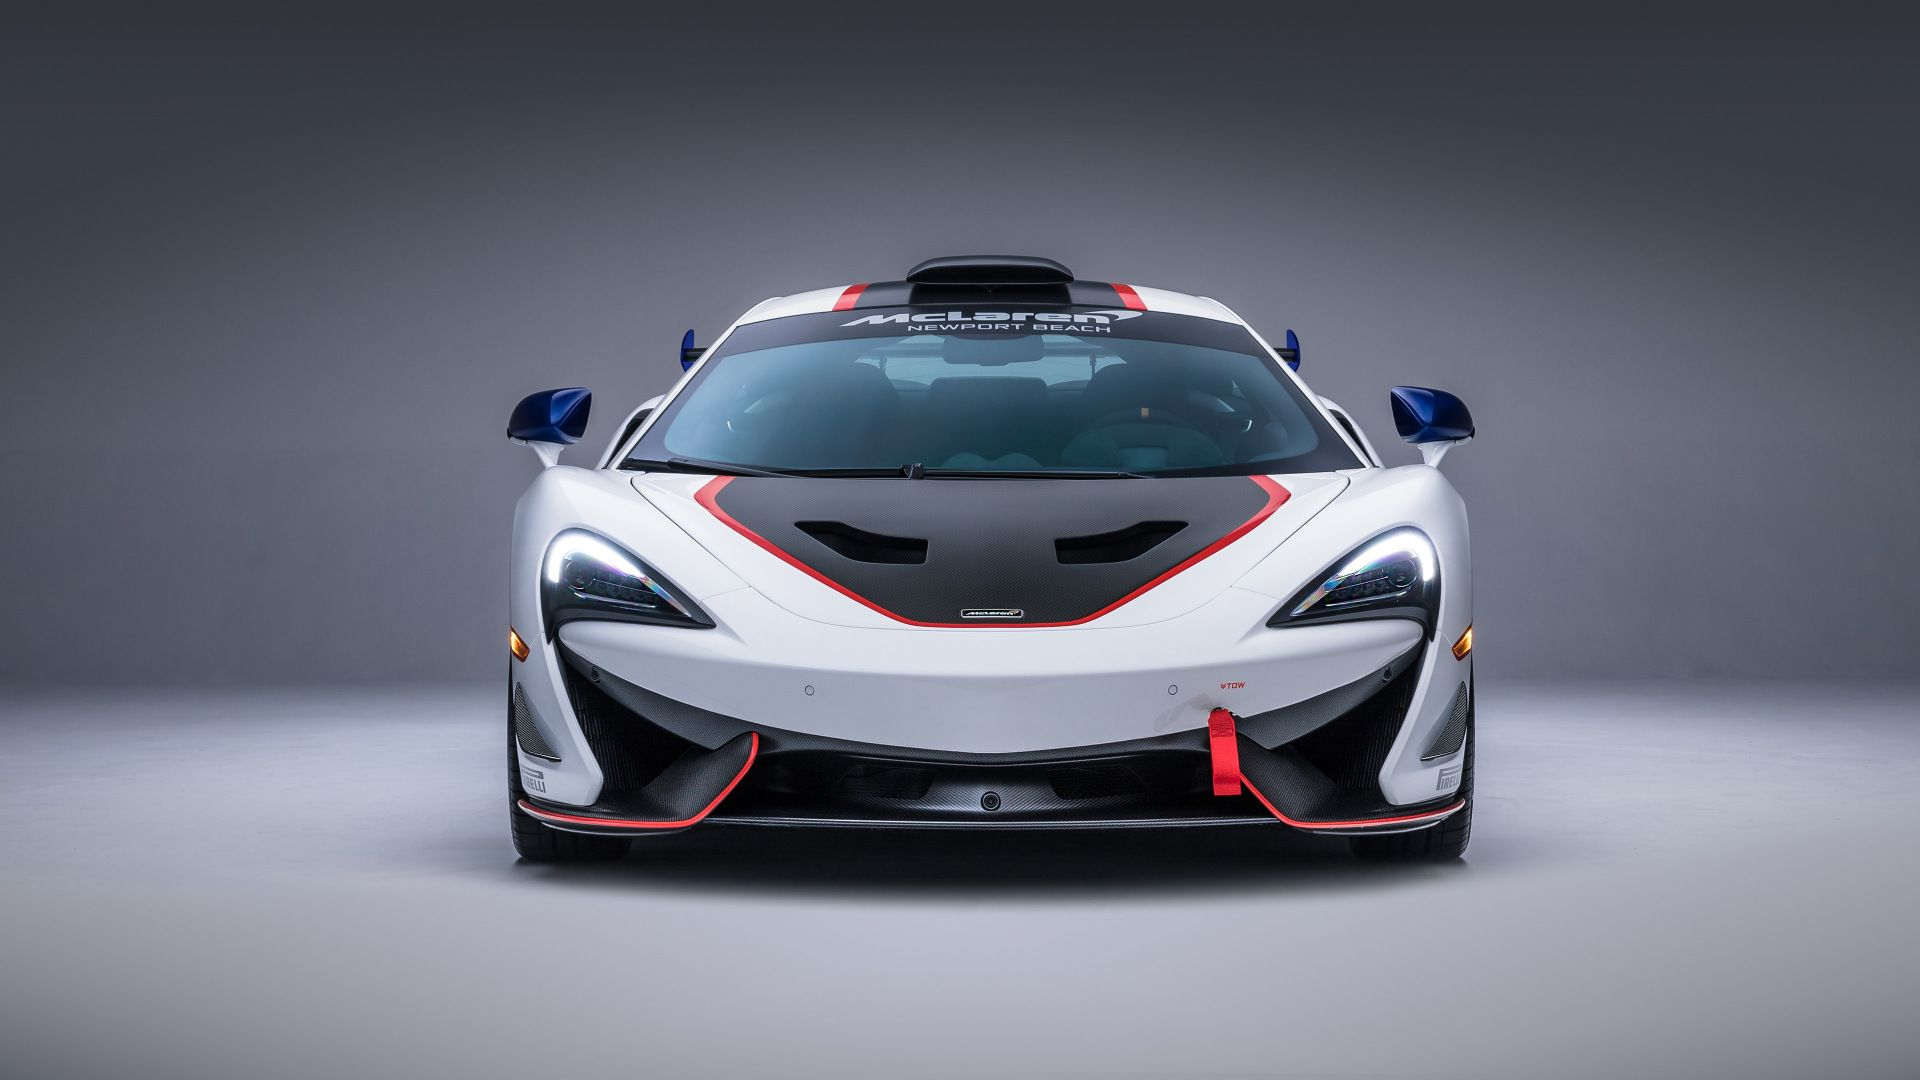 McLaren MSO X [1920x1080] Need trendy iPhone7